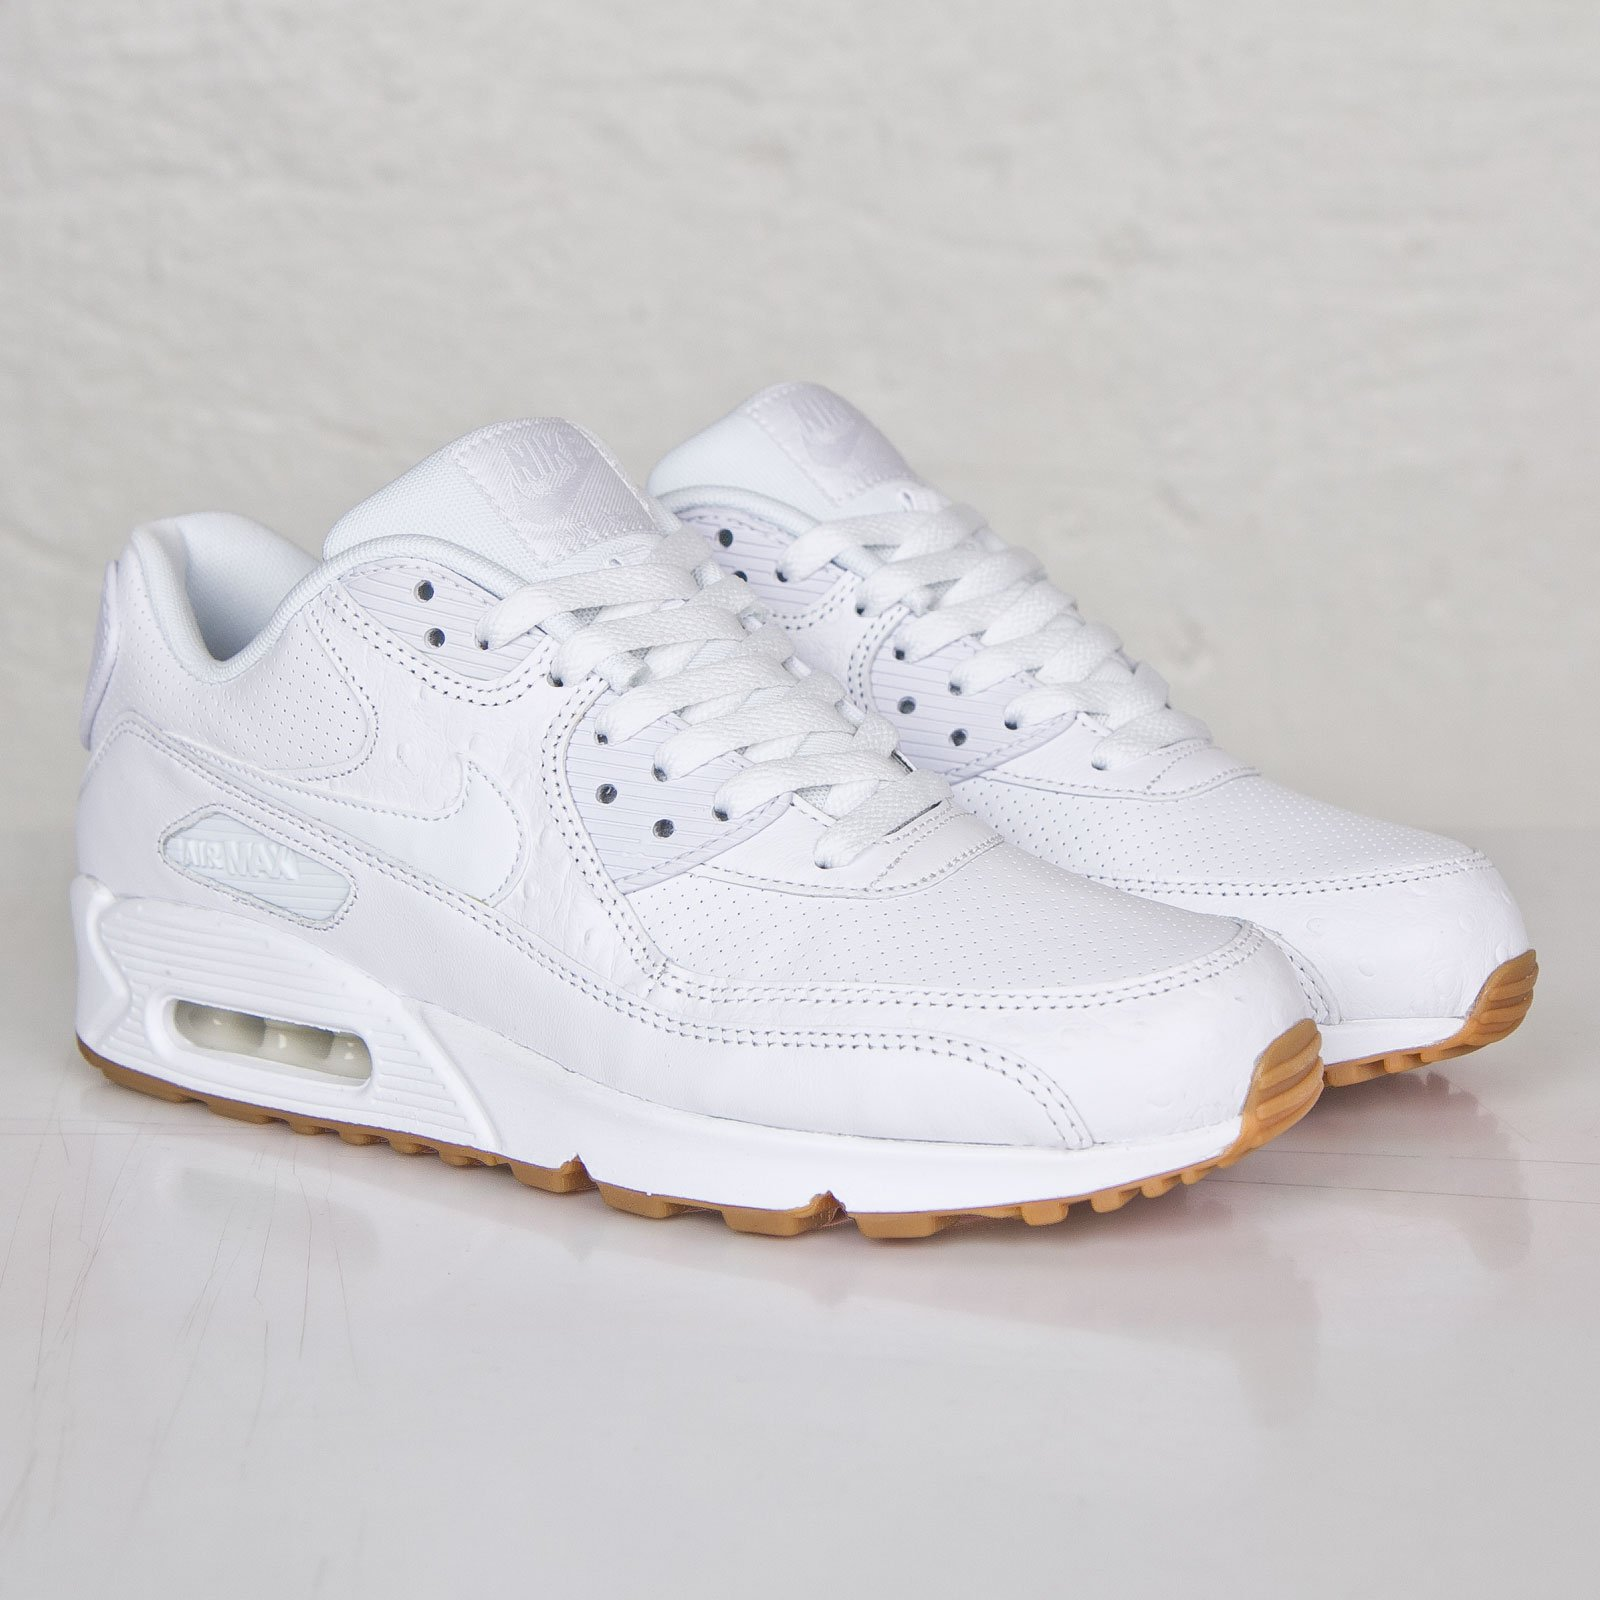 énorme réduction e0827 472f1 Nike Air Max 90 Leather PA - 705012-111 - Sneakersnstuff ...